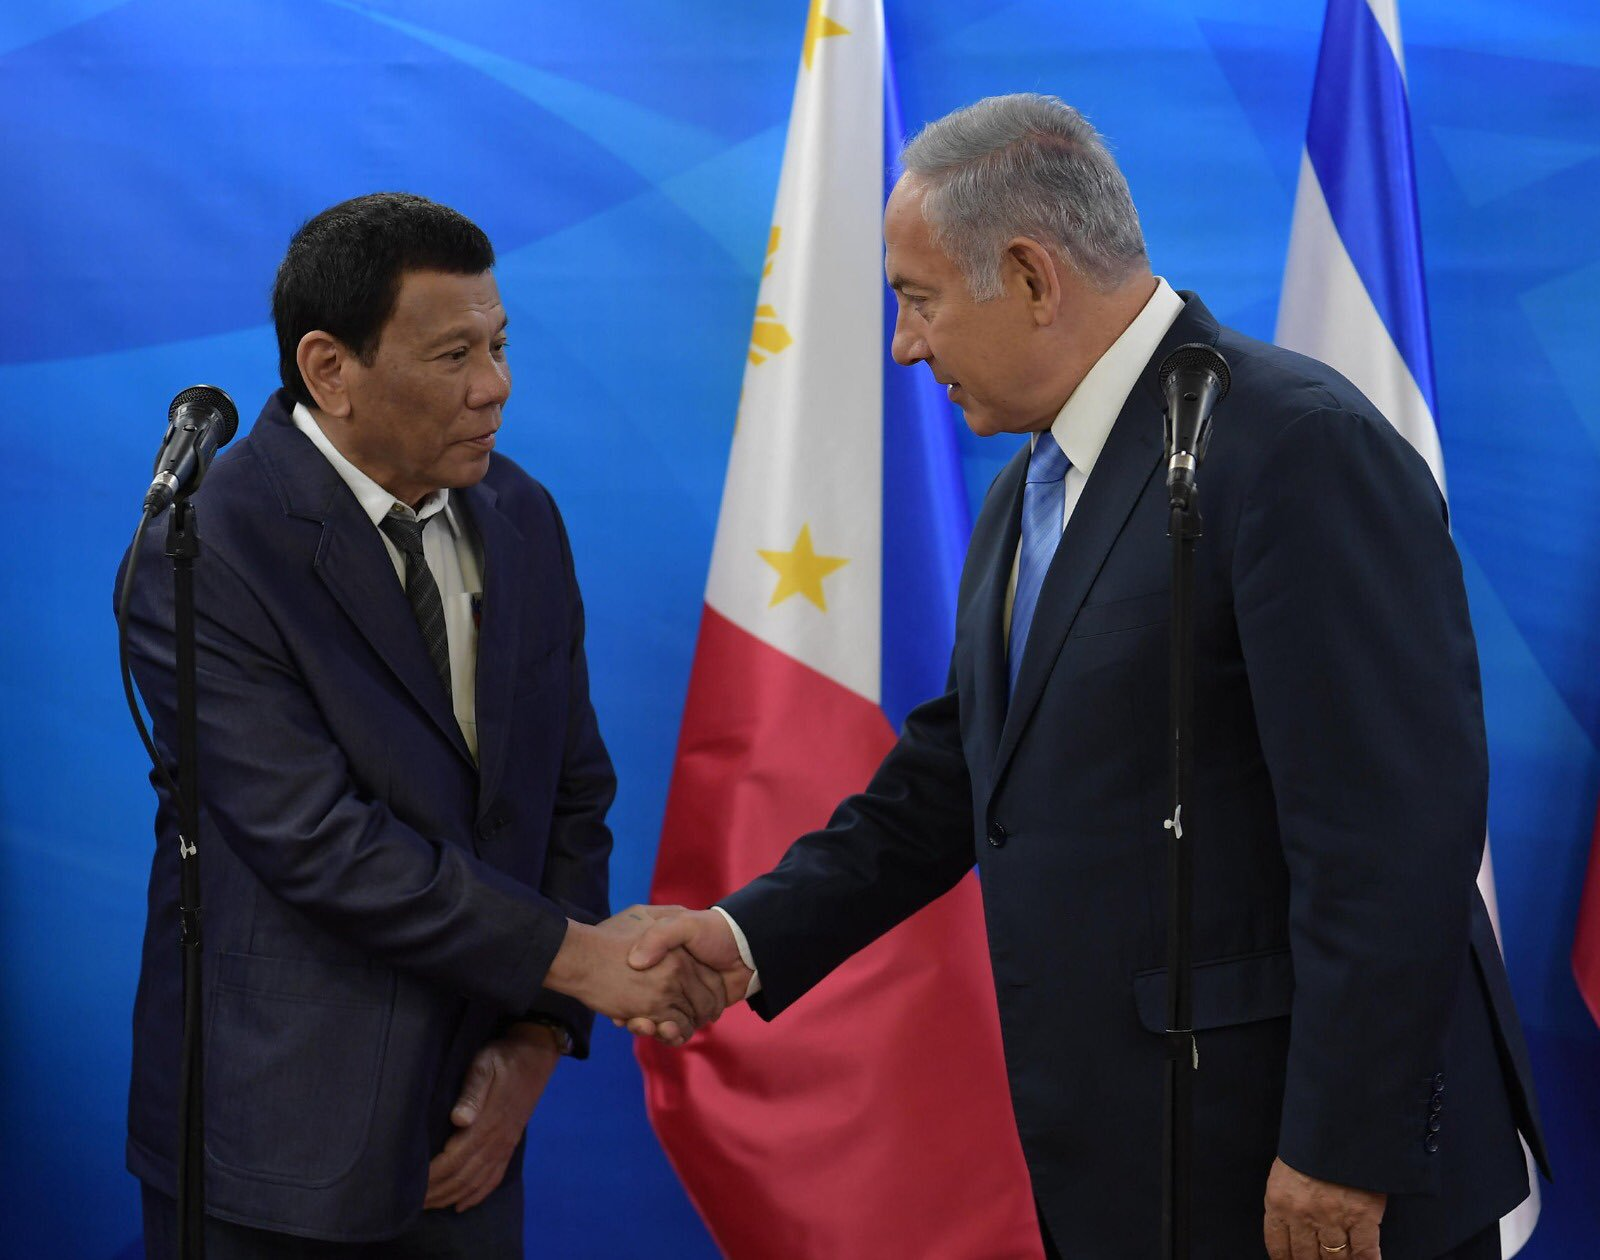 Duterte and Netanyahu